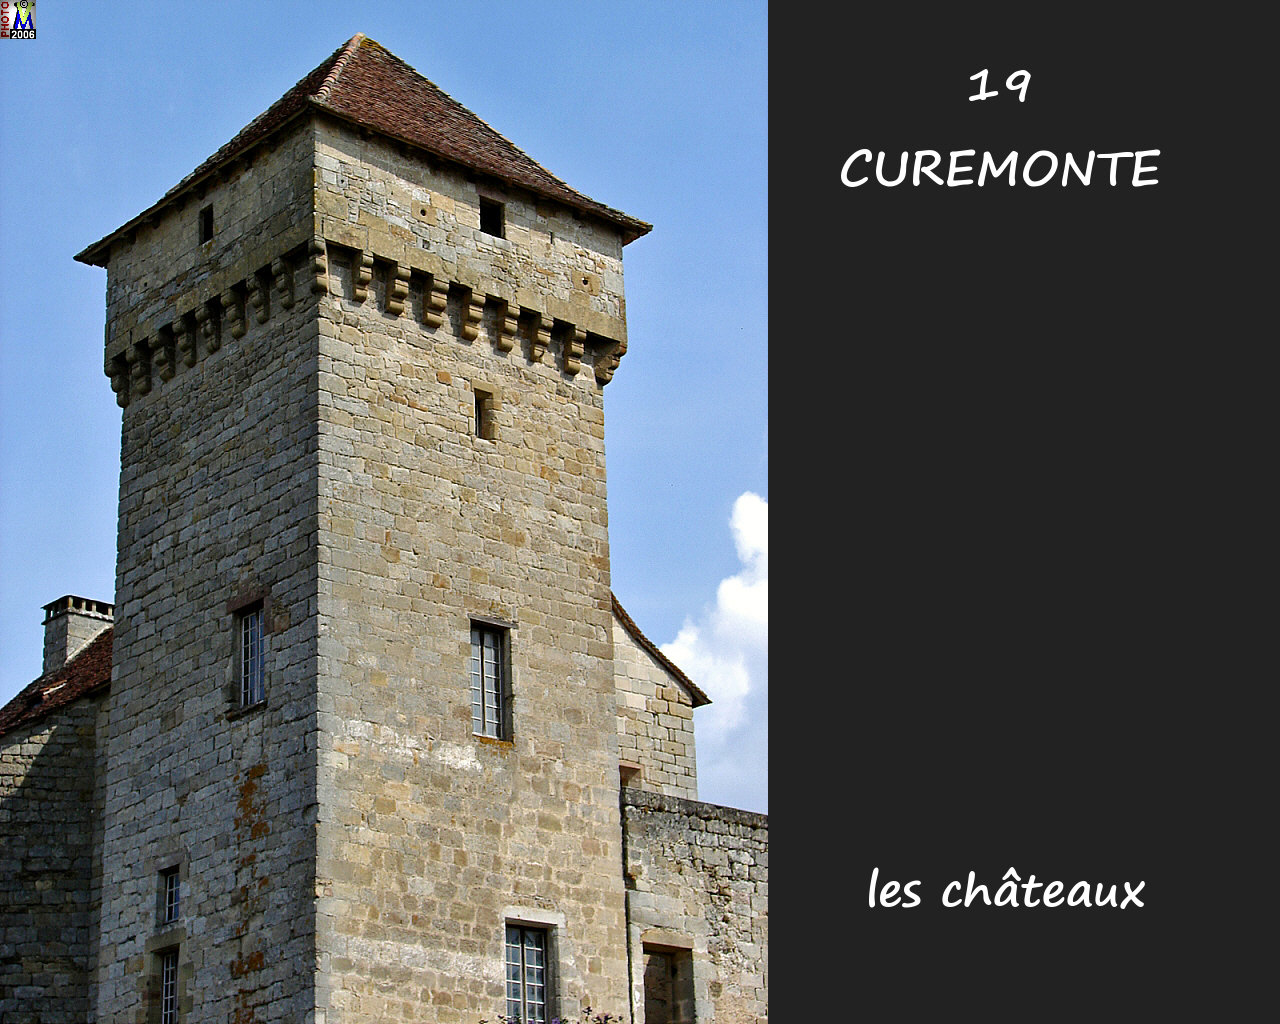 19CUREMONTE_chateau_122.jpg